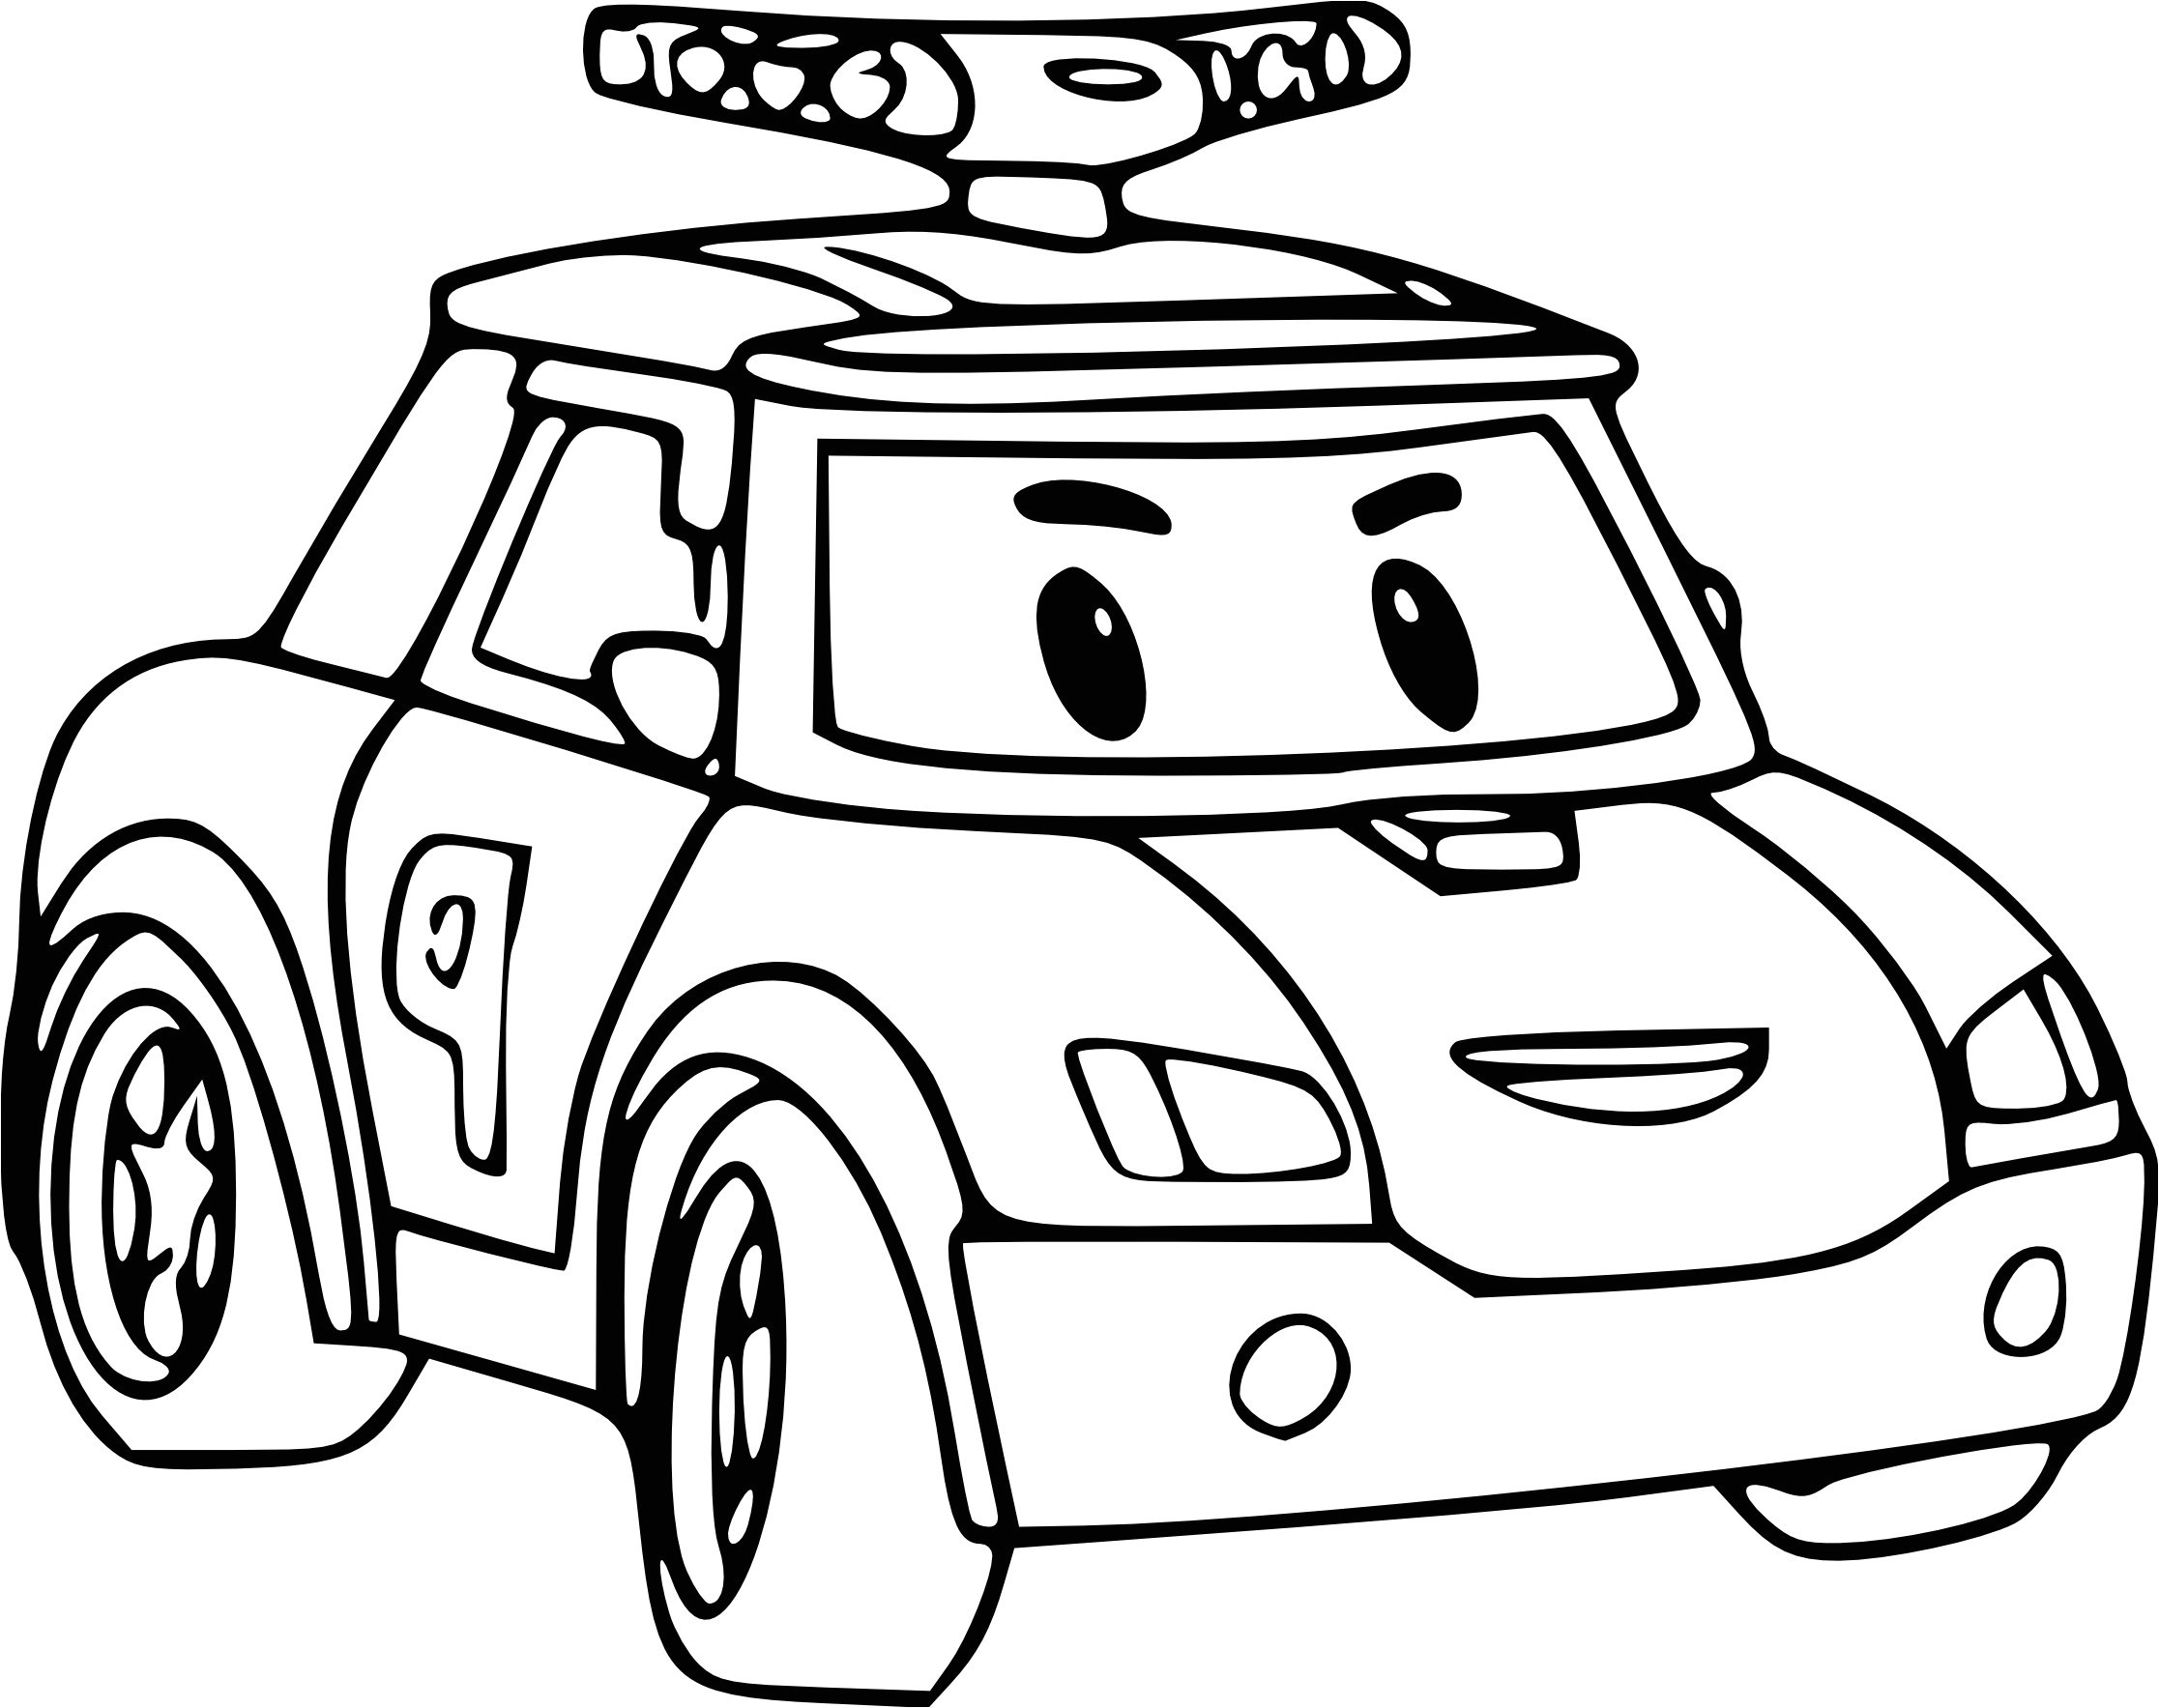 Robocar Poli Drawing